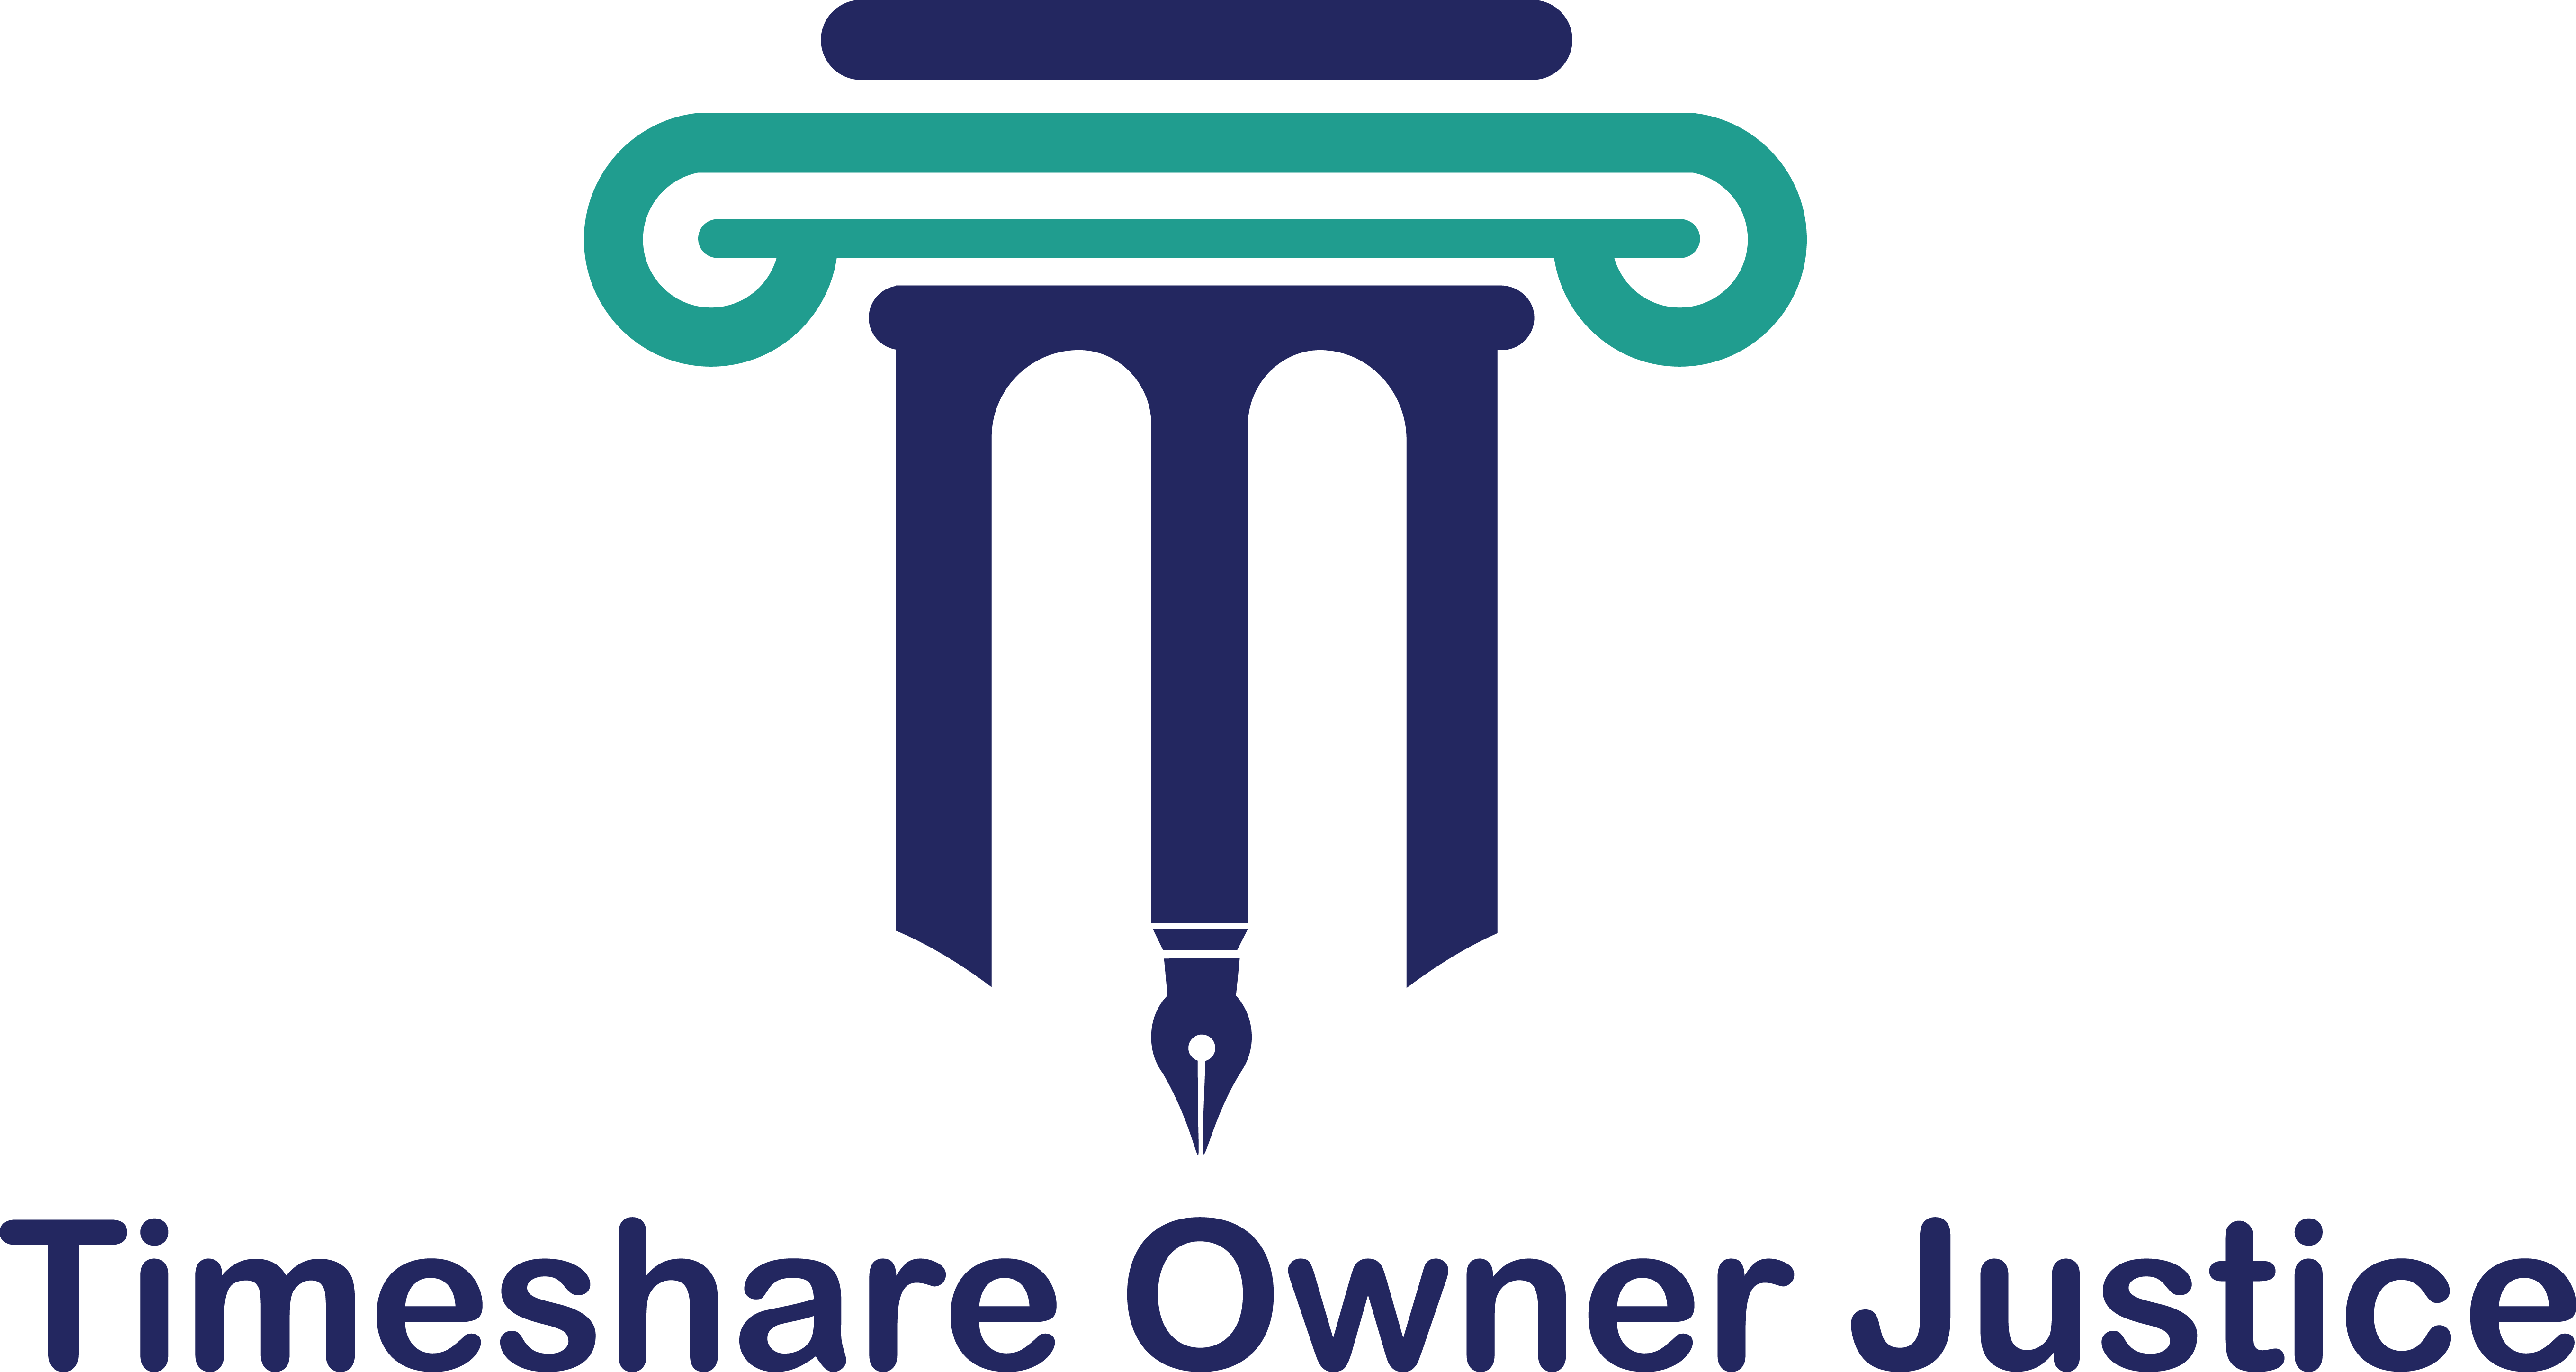 """Timeshare Owner Justice Announces New """"Dispute Resolution"""" Program to Help Unhappy Timeshare Owners Legally Exit Their Lifetime Contract"""